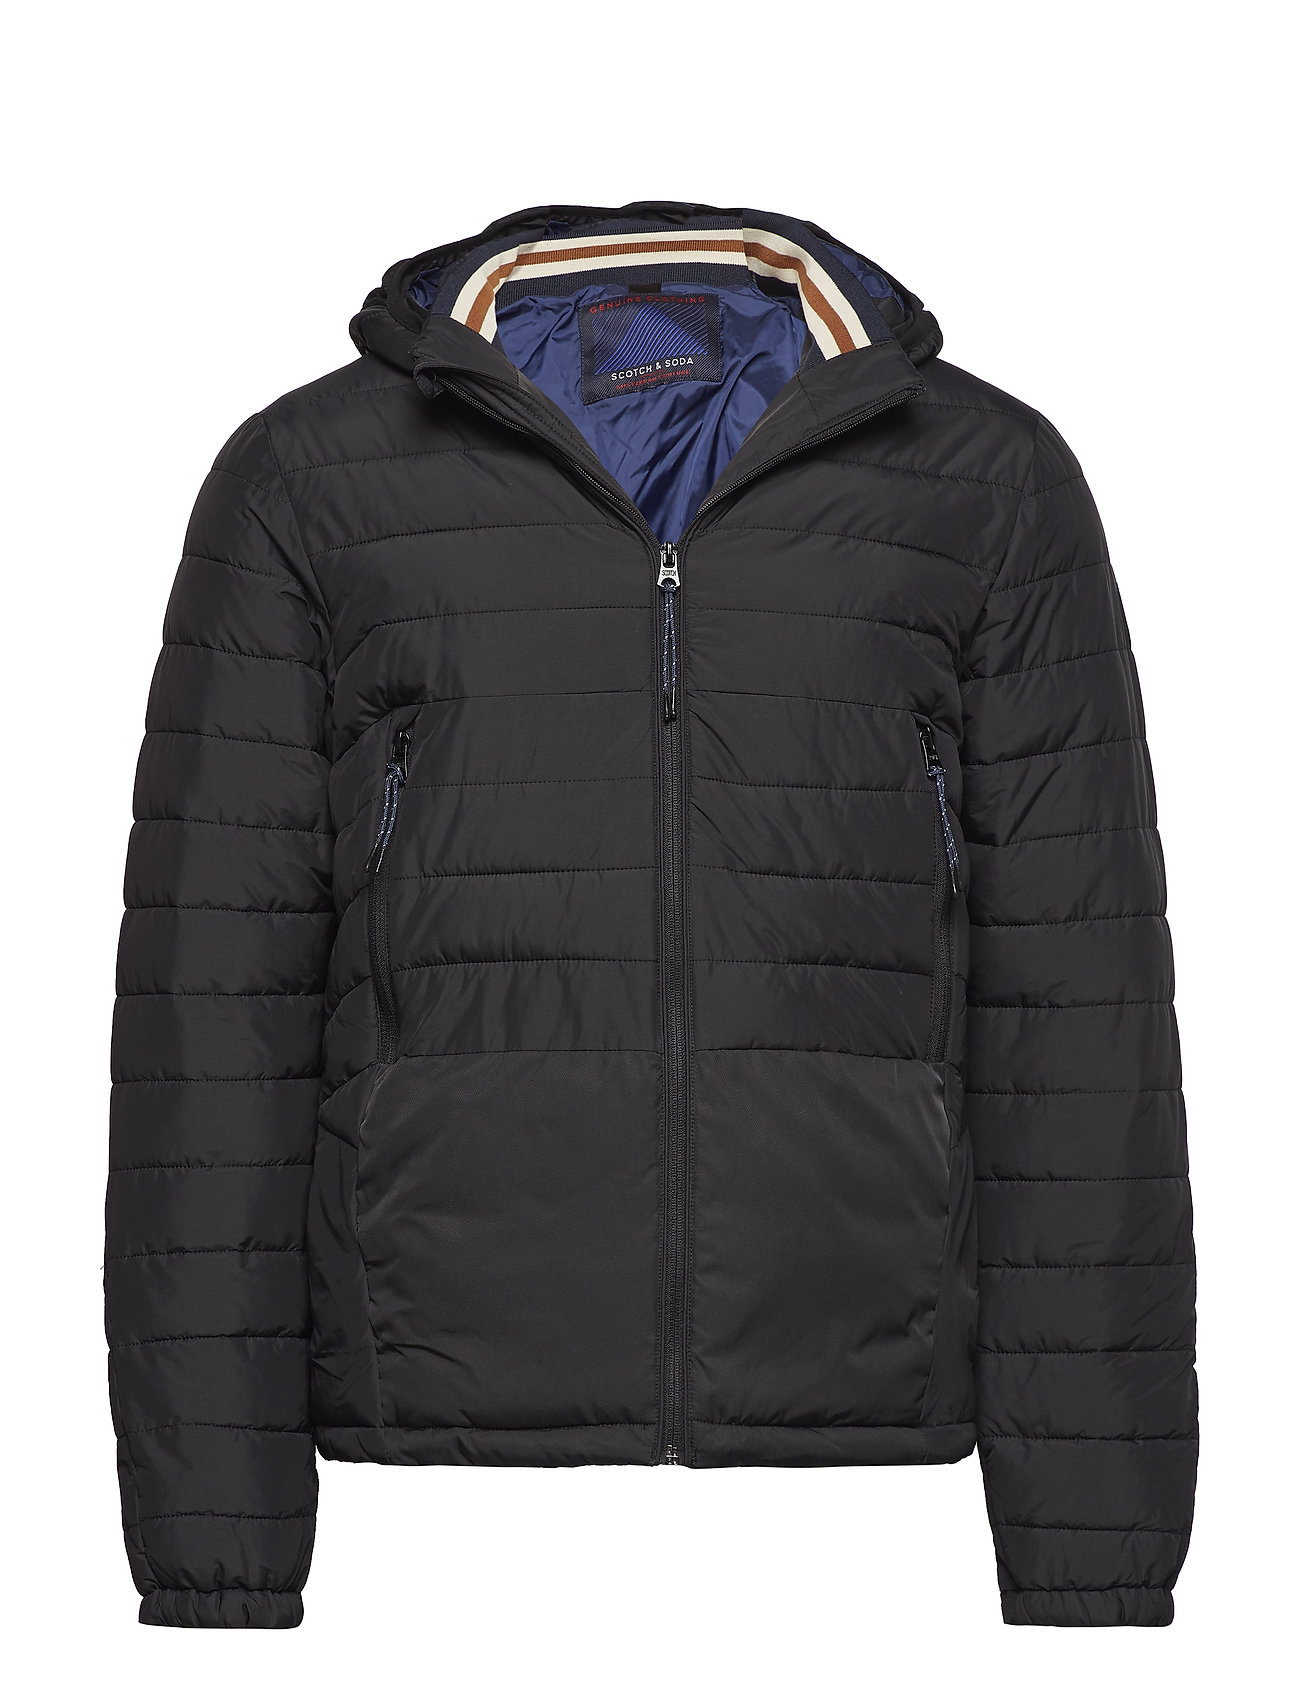 Image of Short Quilted Nylon Jacket With Detachable Hood Foret Jakke Blå Scotch & Soda (3066191879)